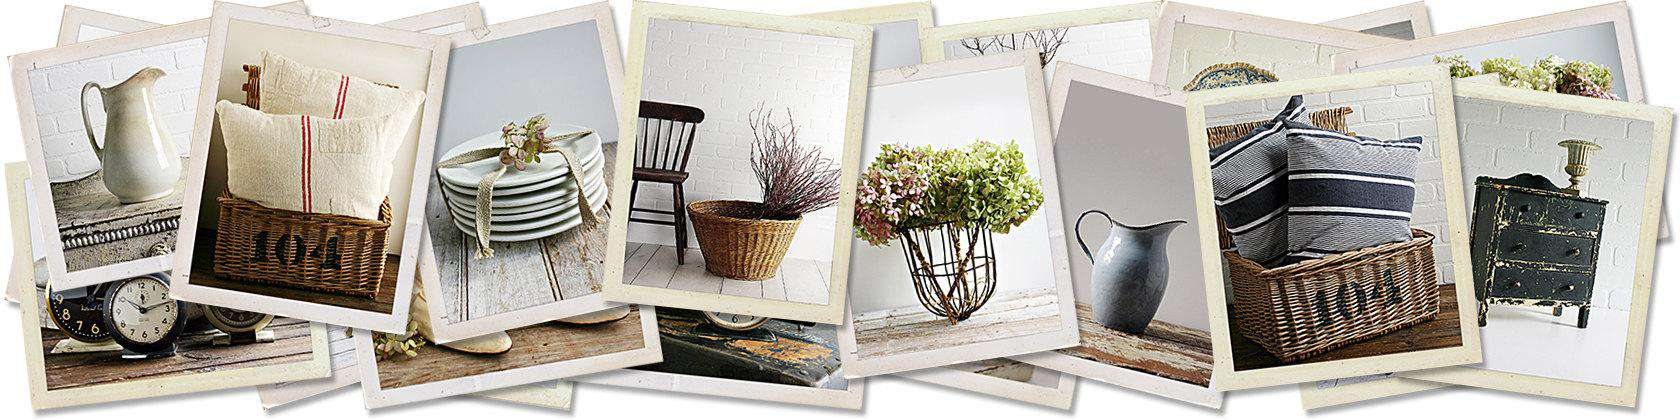 Vintage pillows, plates, basket, plant vase, tin pitcher and drawer in a collage.